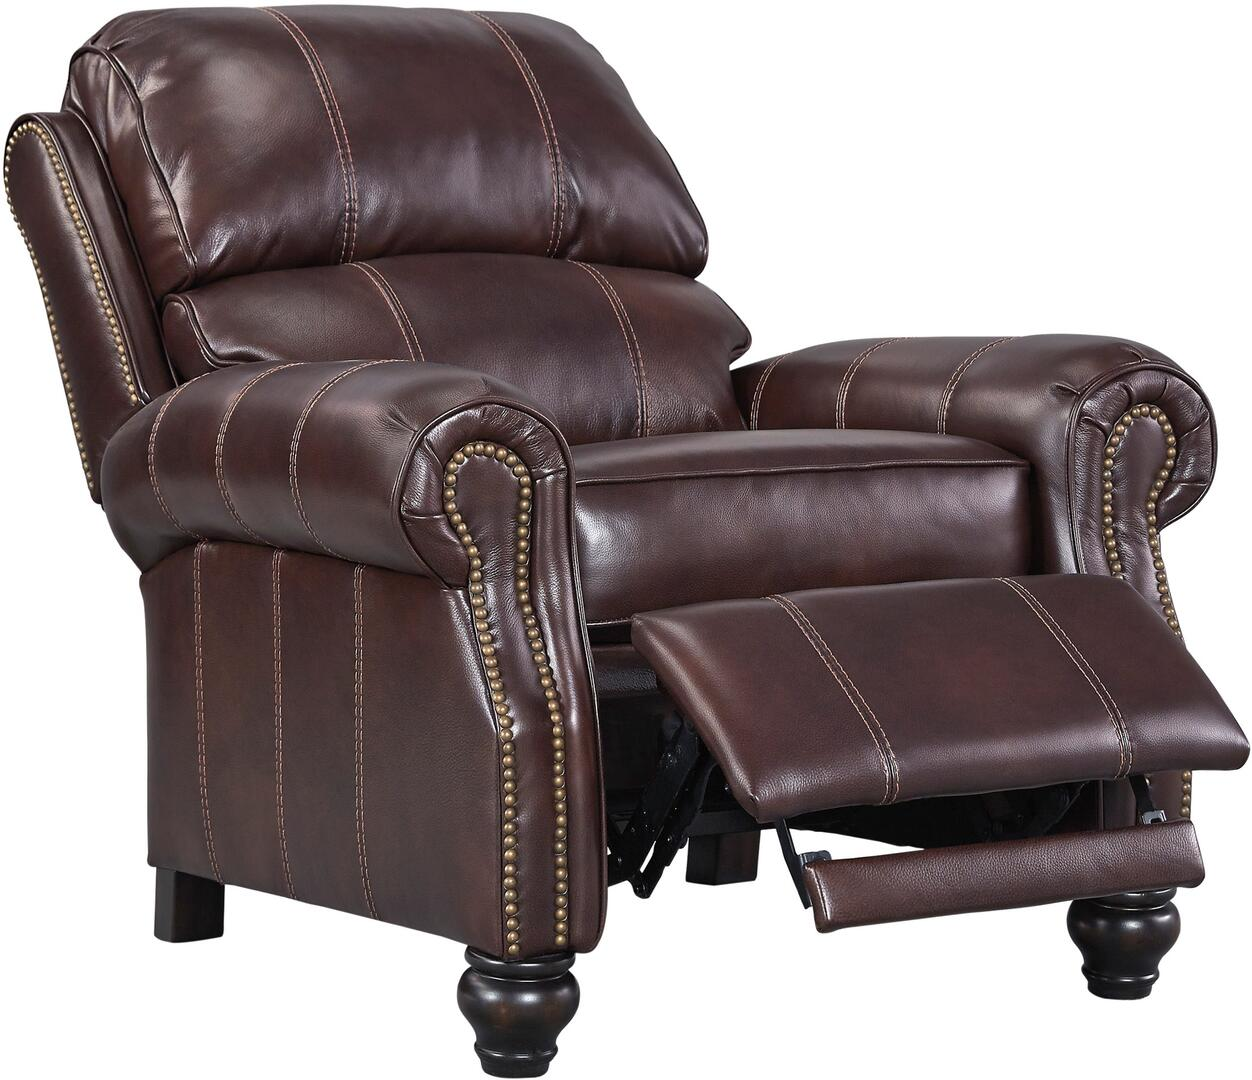 sr rocker height powell recliners recliner fine charles threshold accents trim upholstered accentspowell item jessica b swivel width products